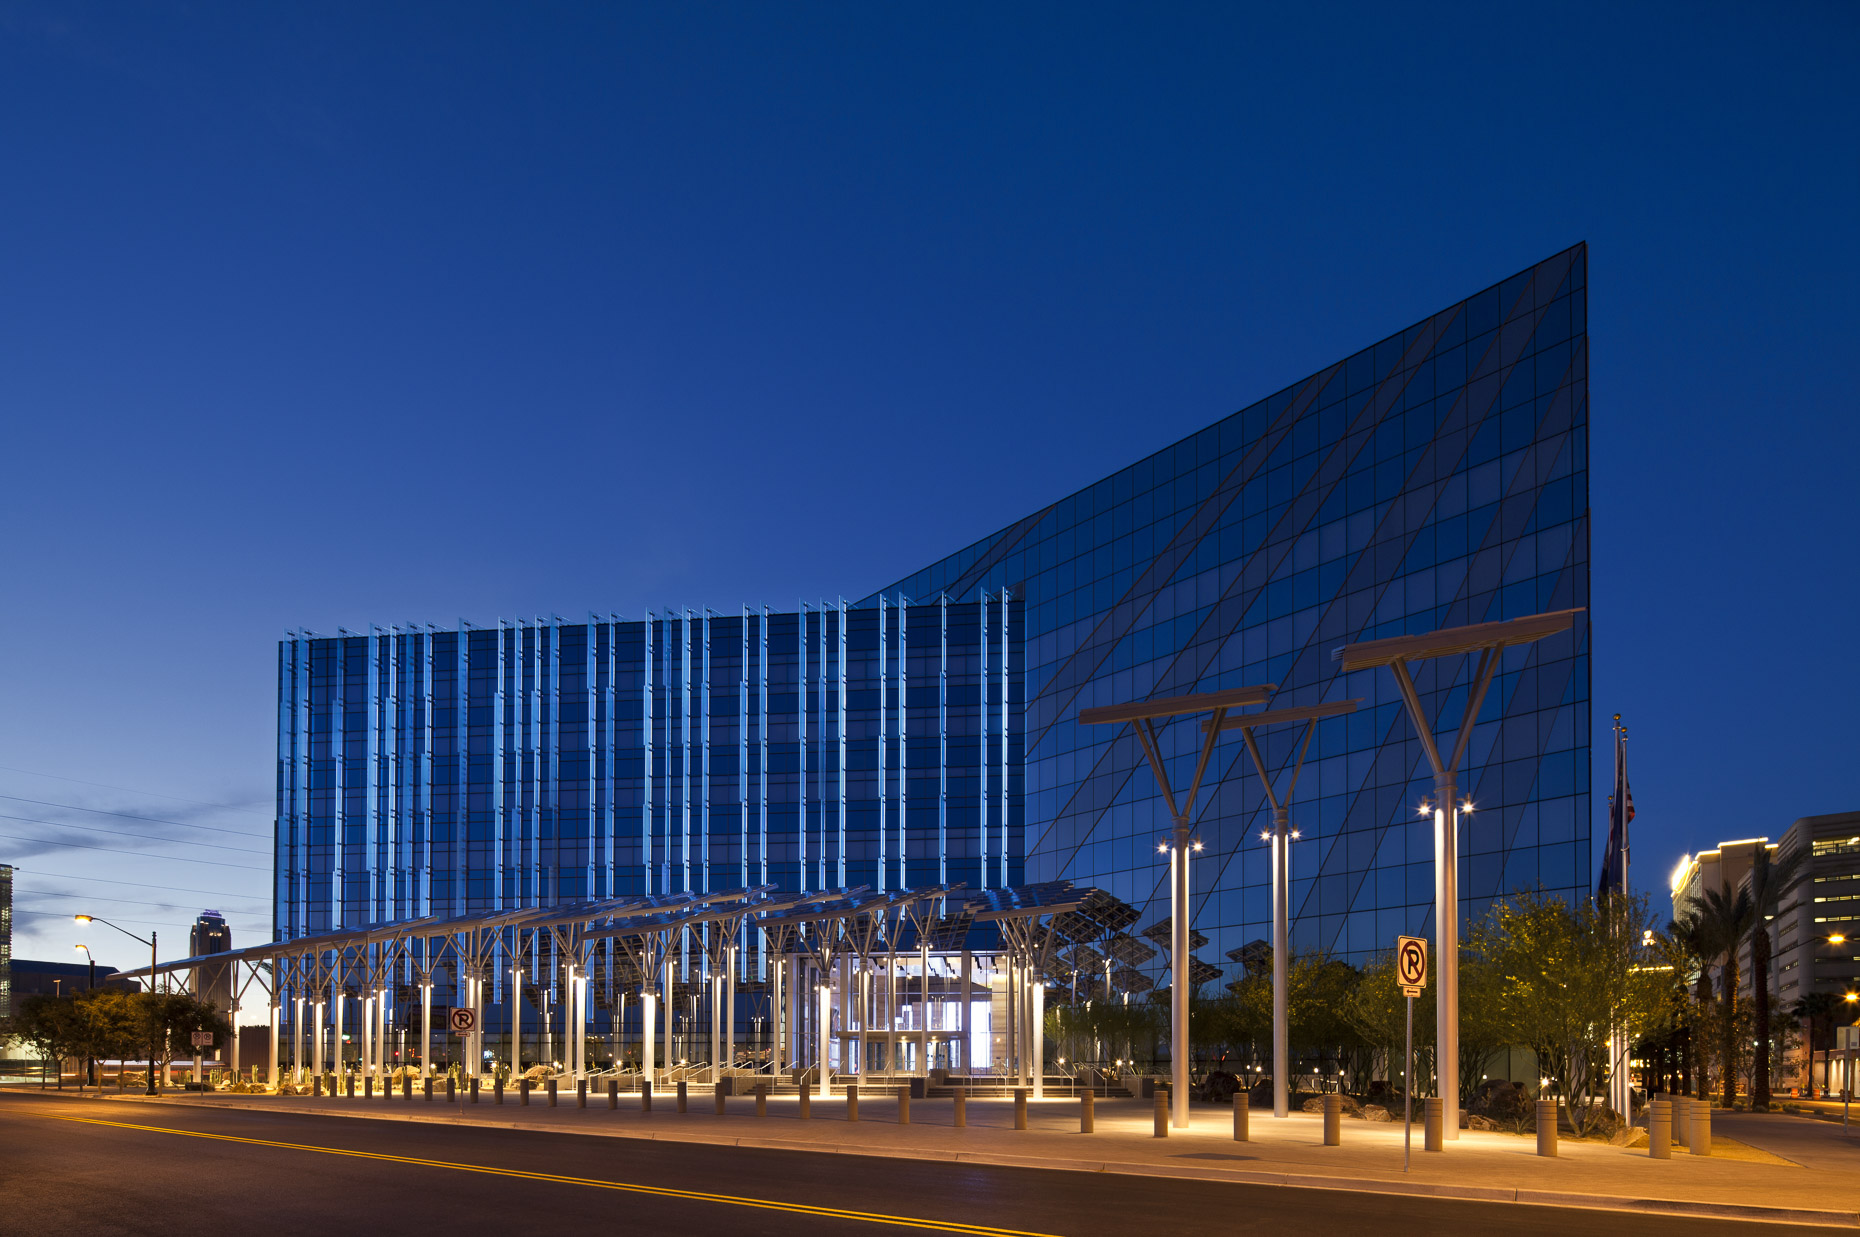 Las Vegas City Hall by Elkus Manfredi Architects photographed by Brad Feinknopf based in Columbus, Ohio